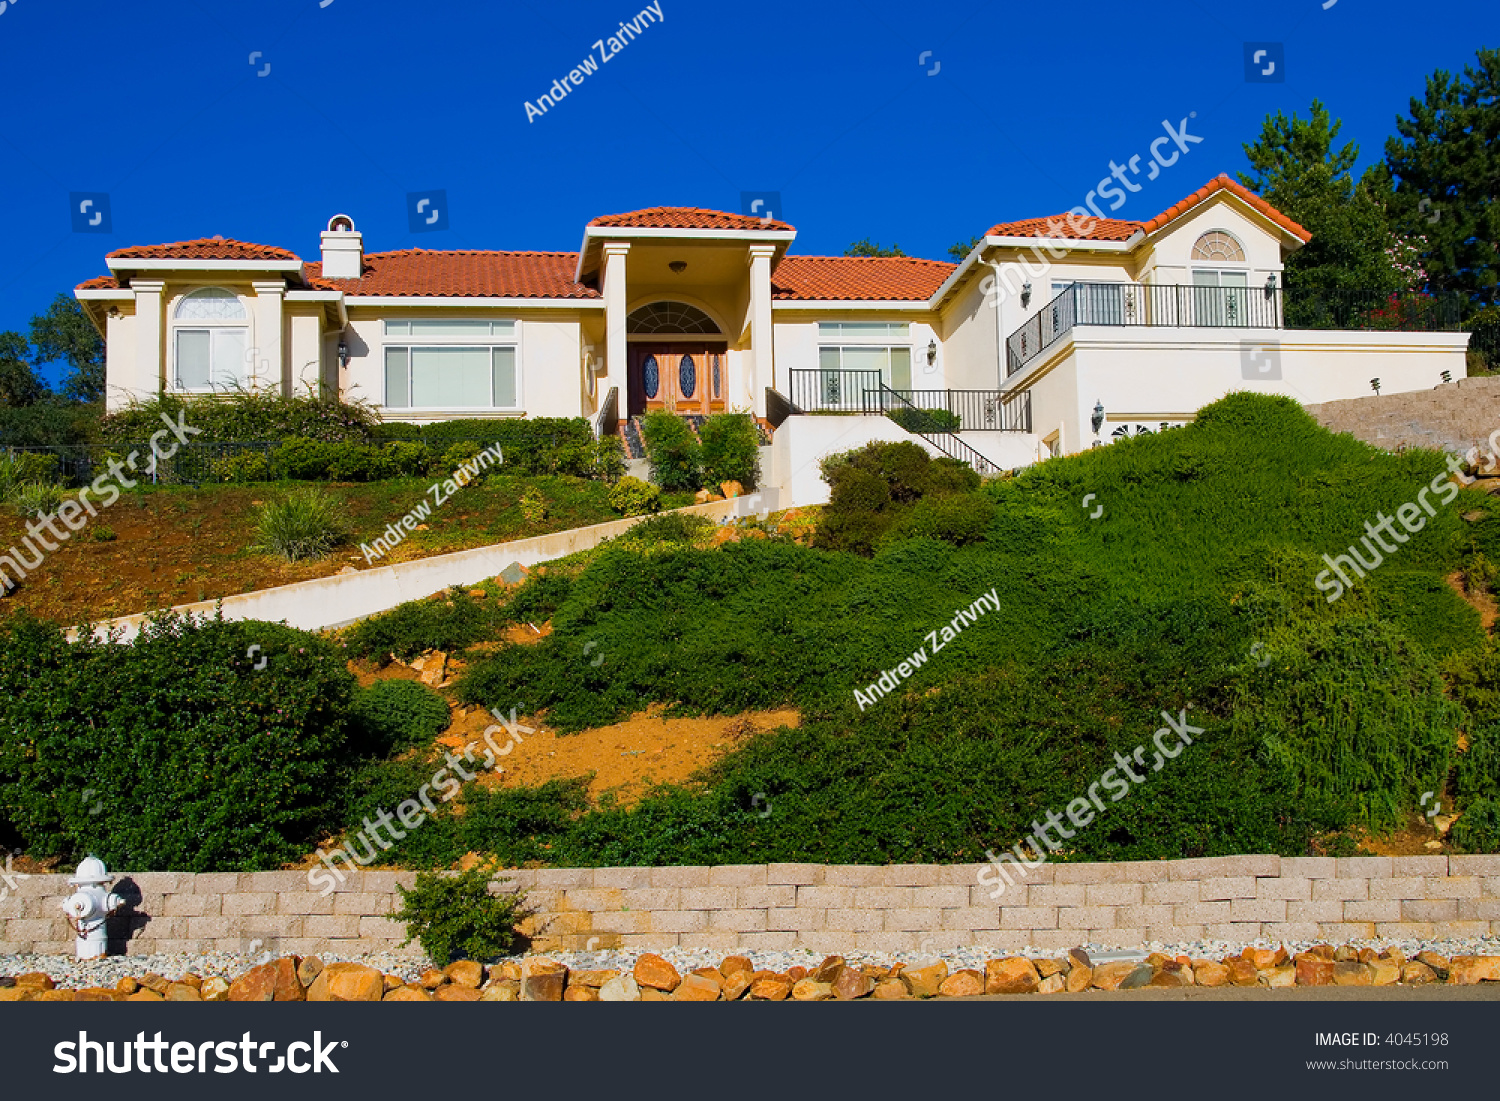 Big new house on the hill stock photo 4045198 shutterstock for New house big